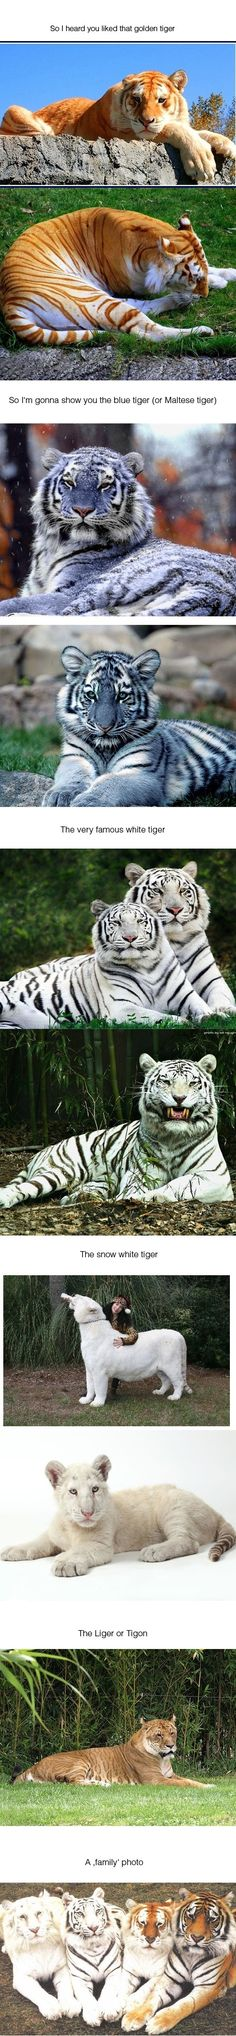 funny-tiger-pic